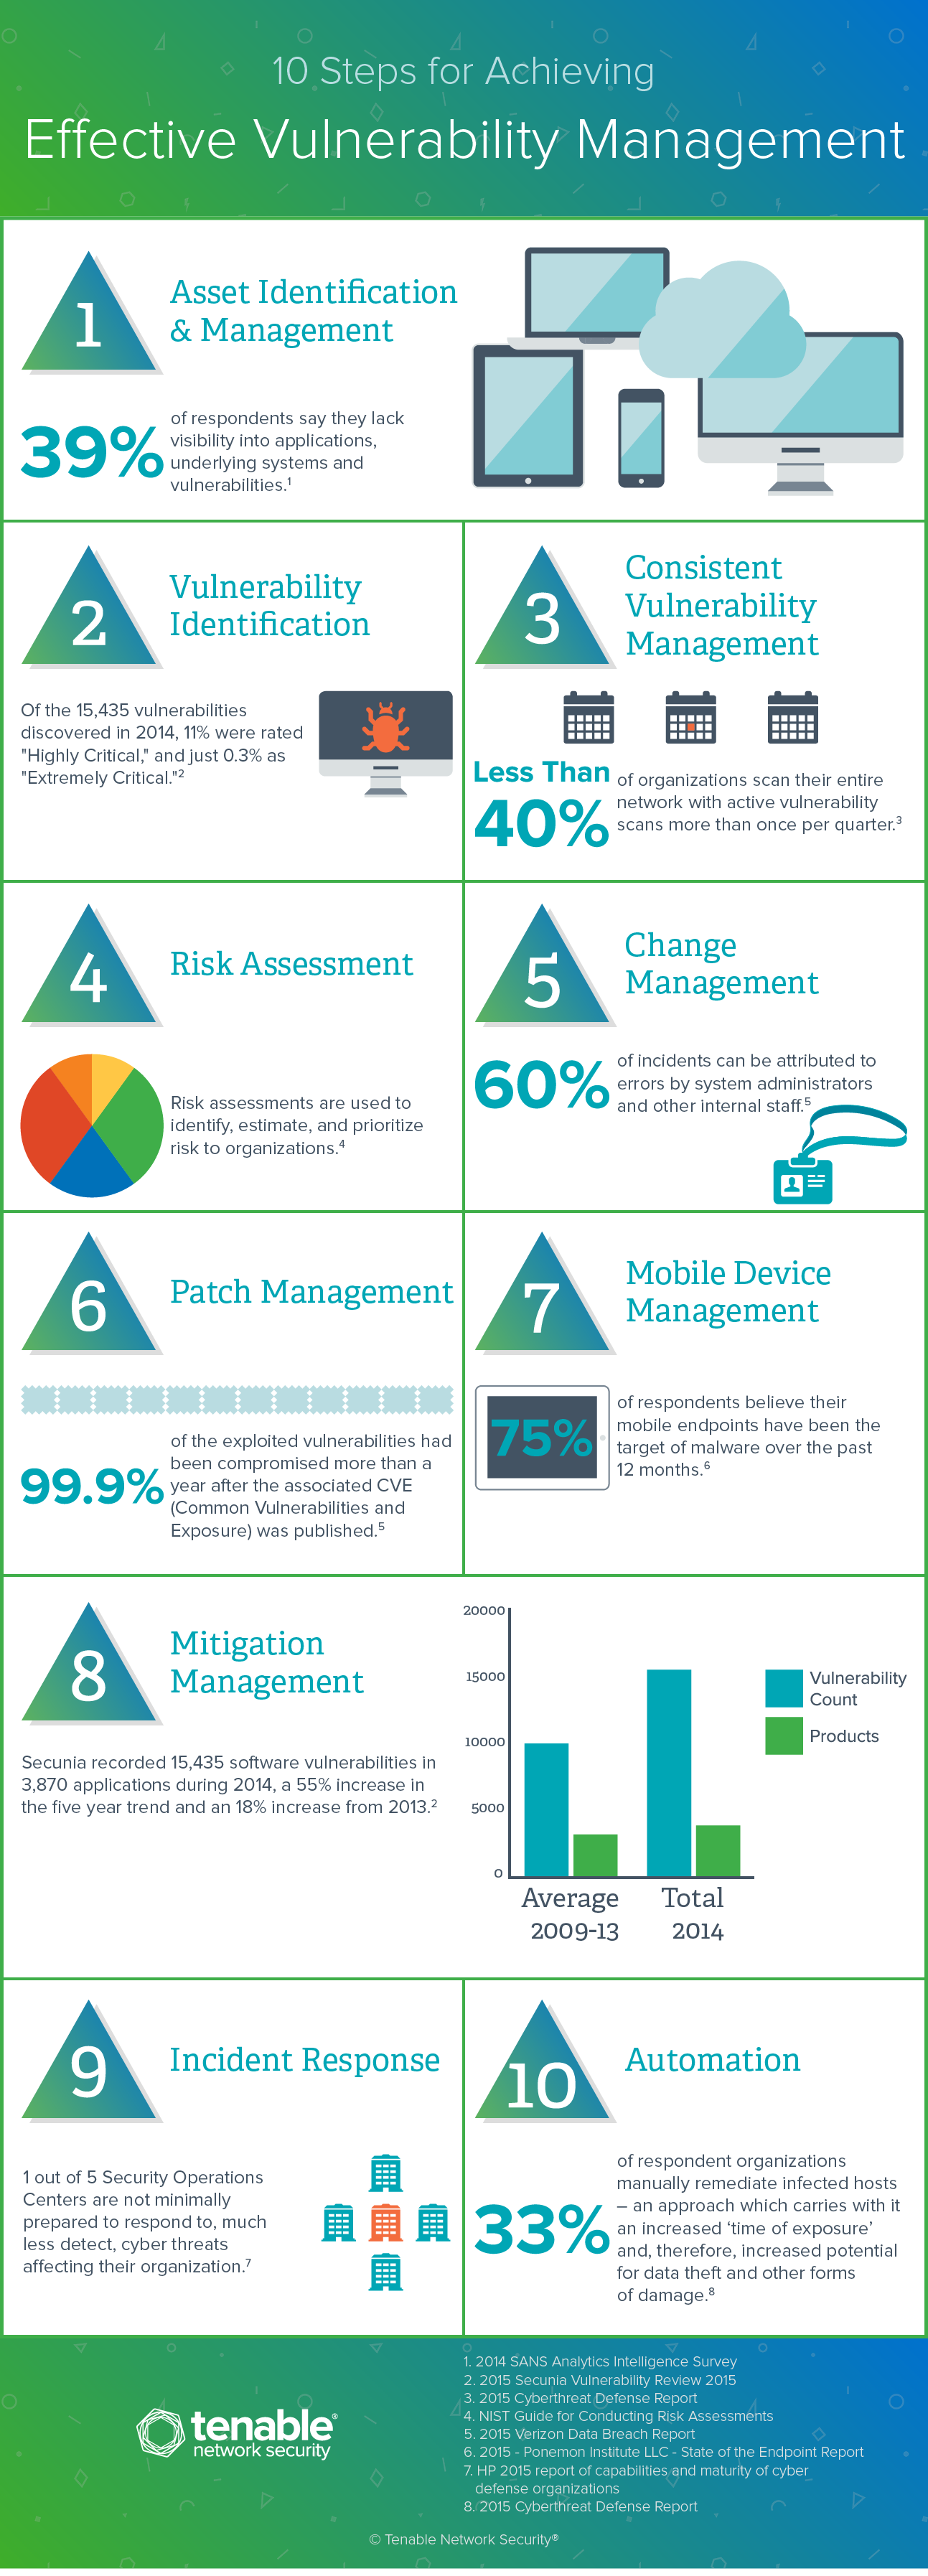 10 Steps for Achieving Effective Vulnerability Management Infographic